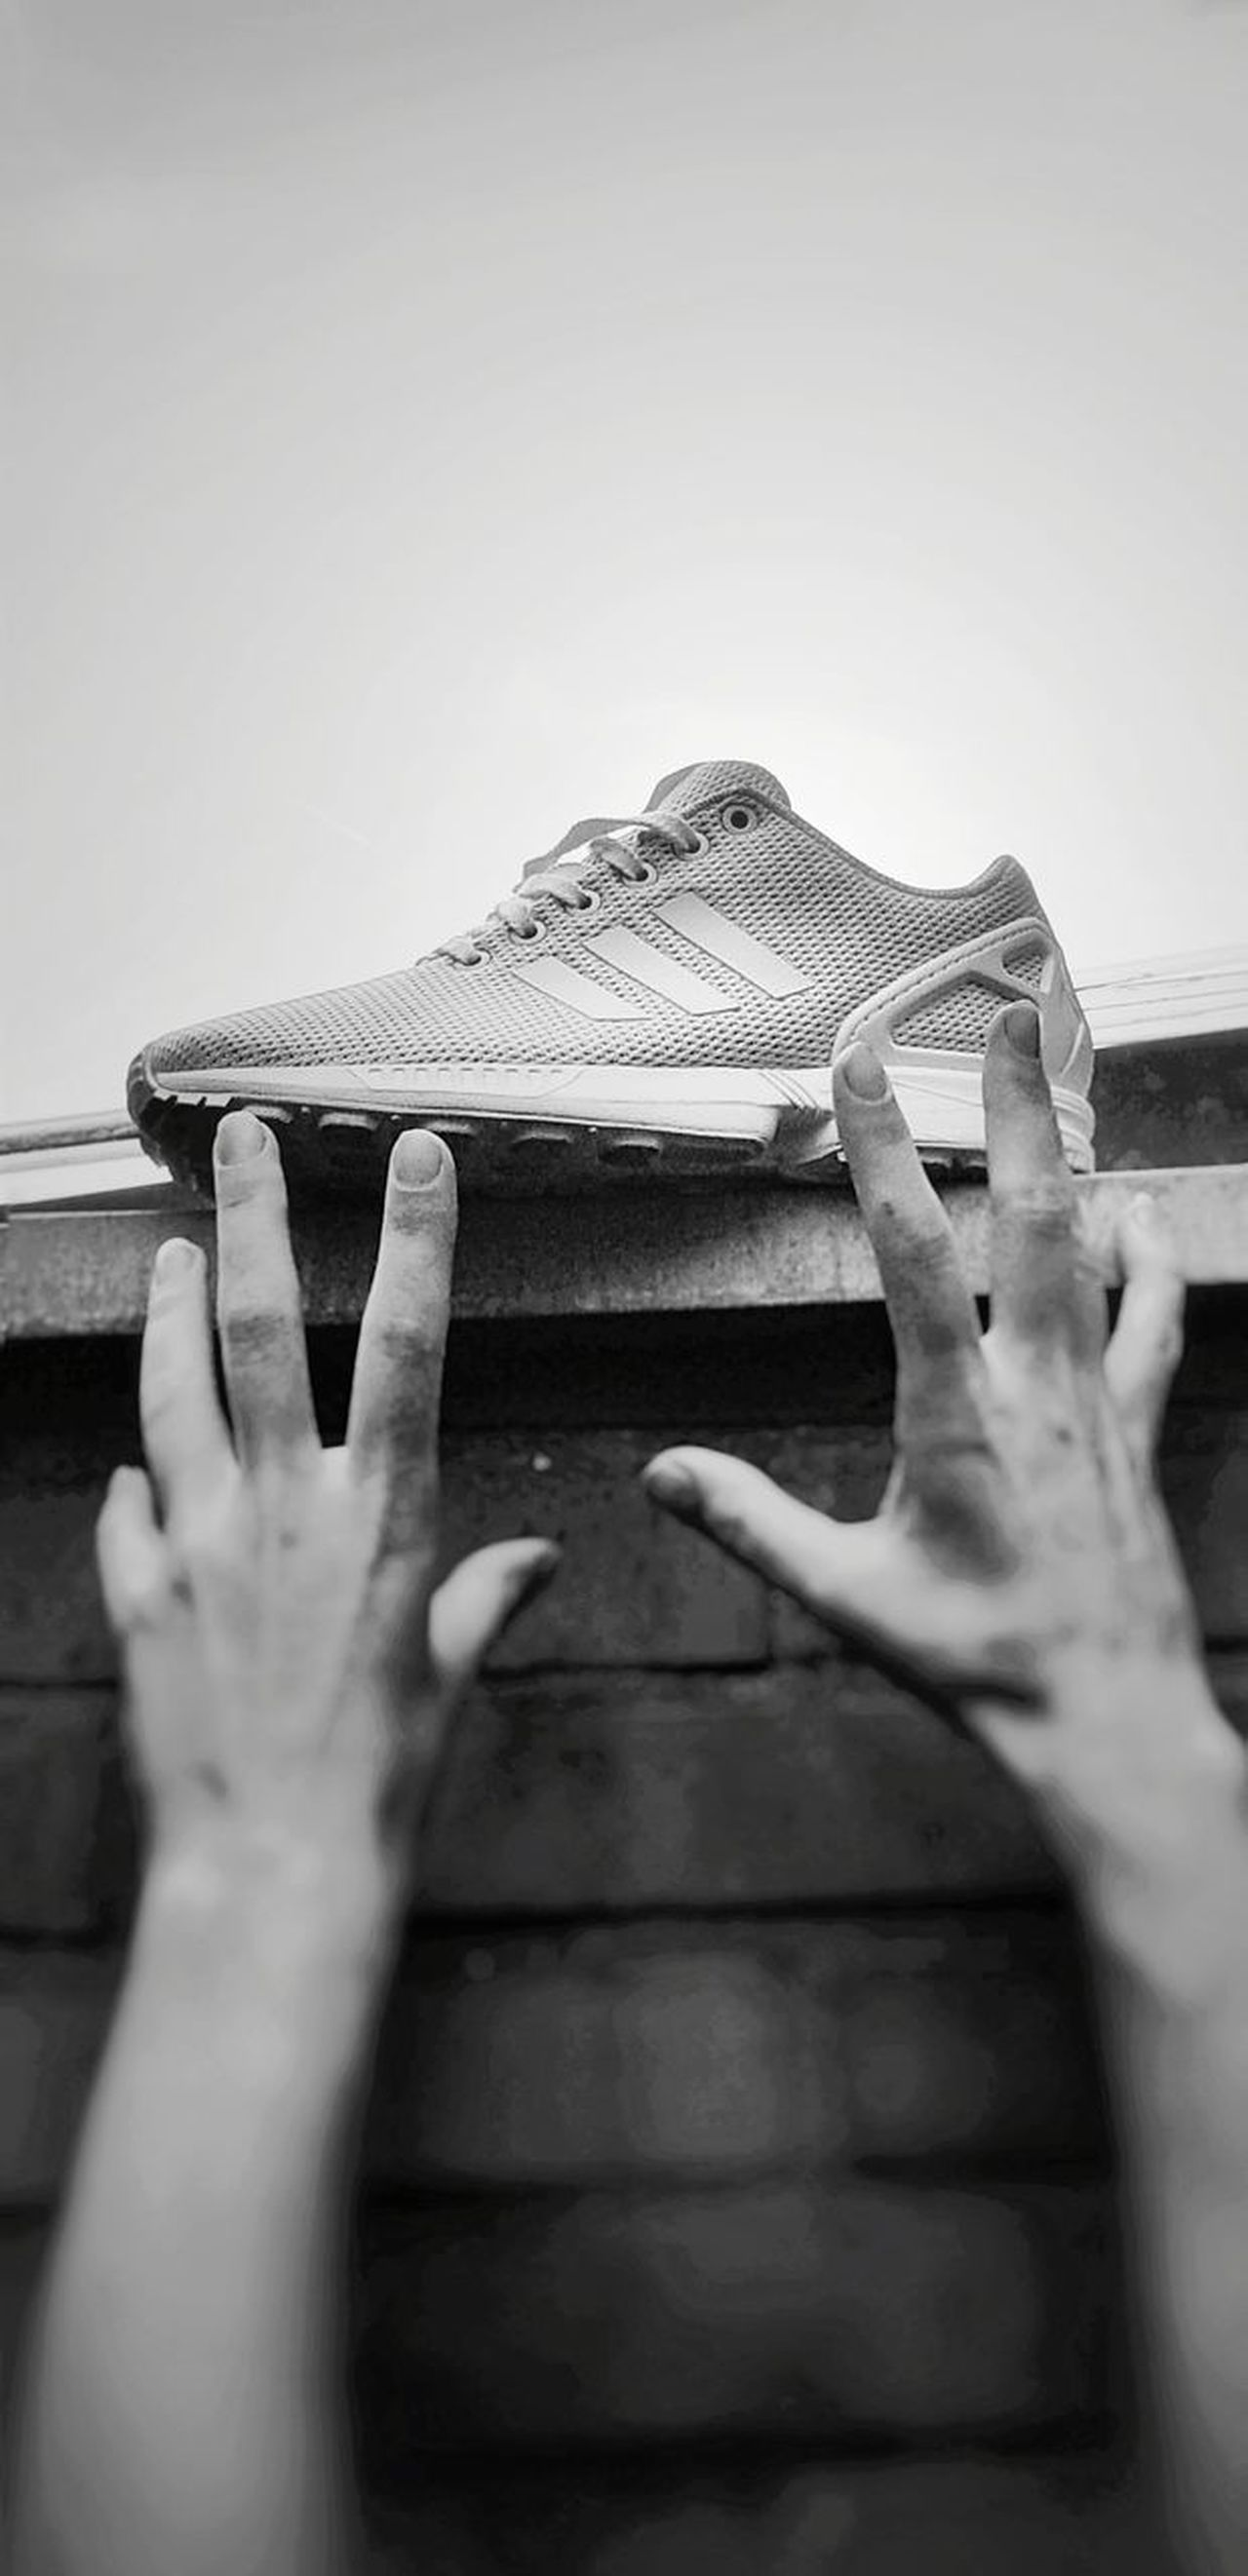 I want the sneaker !! 《 Out Of The Box One Woman I Want It♡ BW_photography B/W Photography Outdoor Photography 》